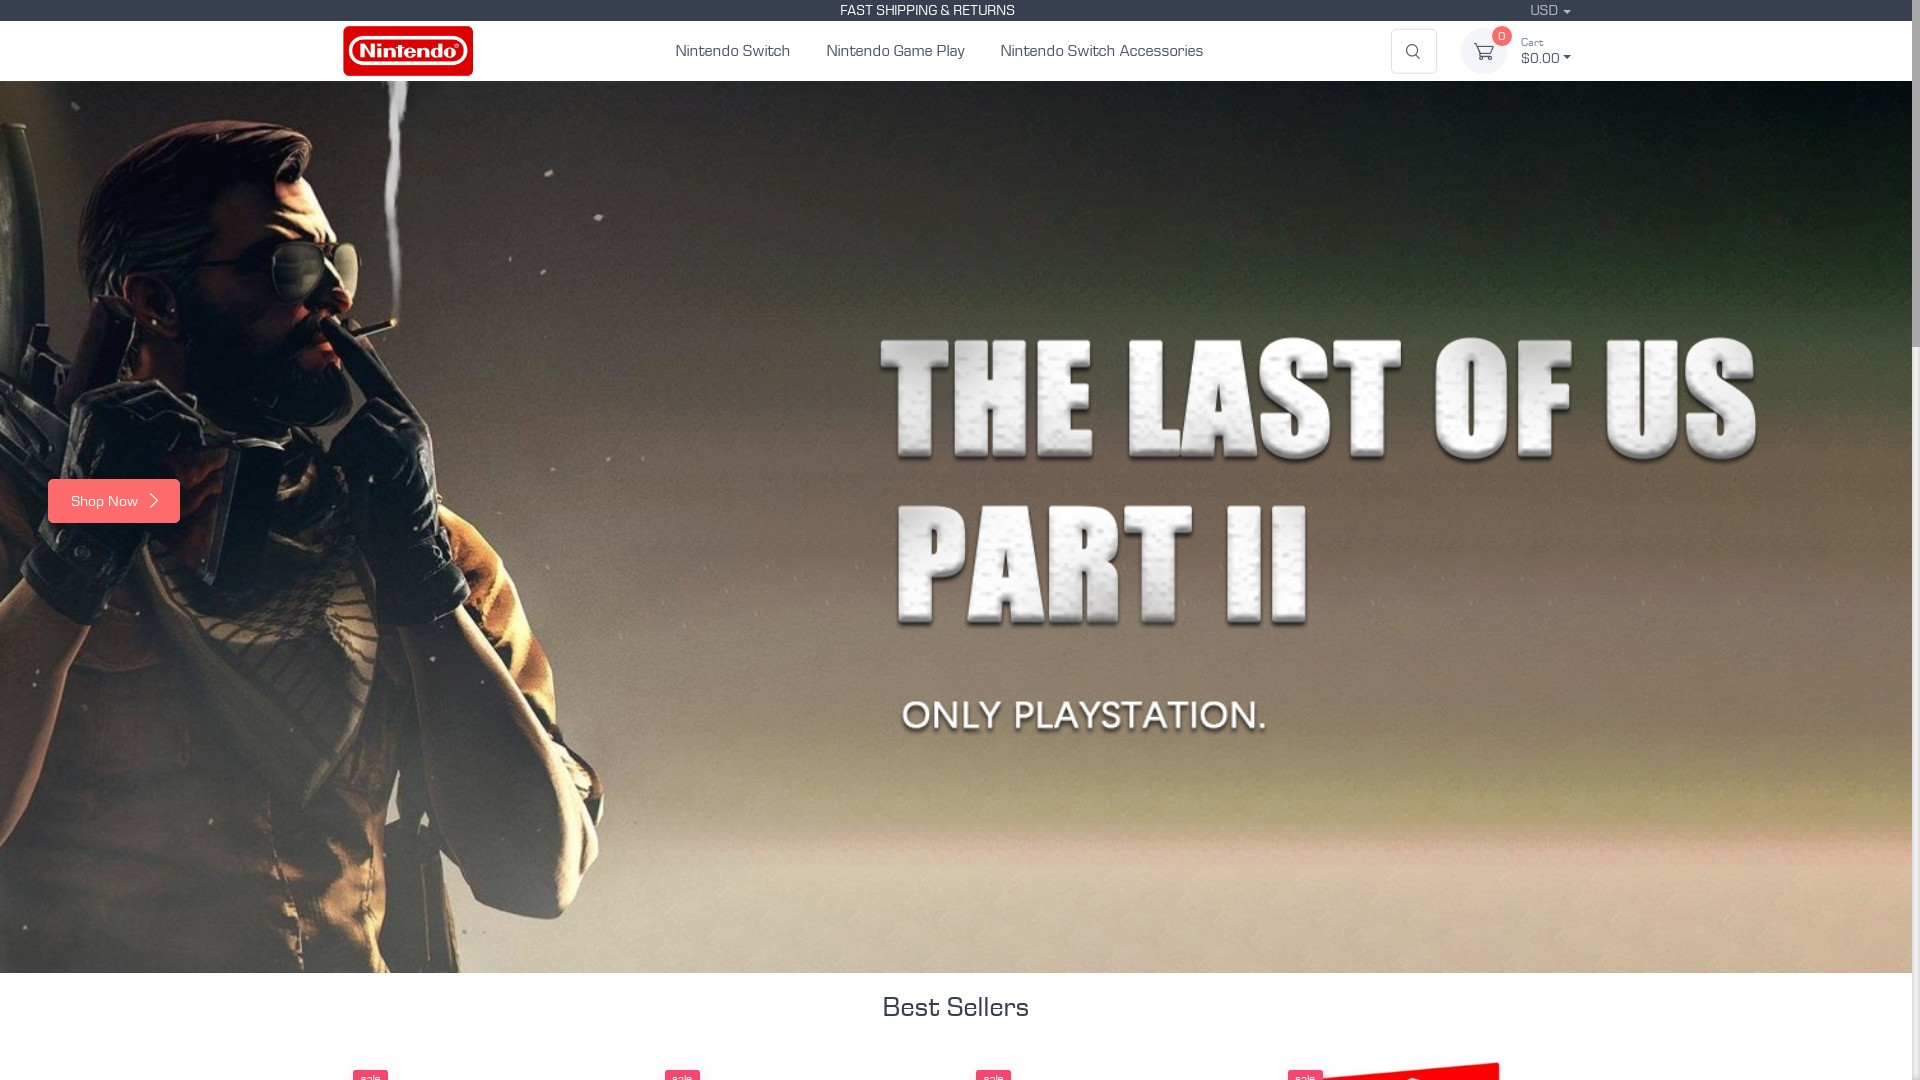 Instead Website Reviews  The Gaming Store